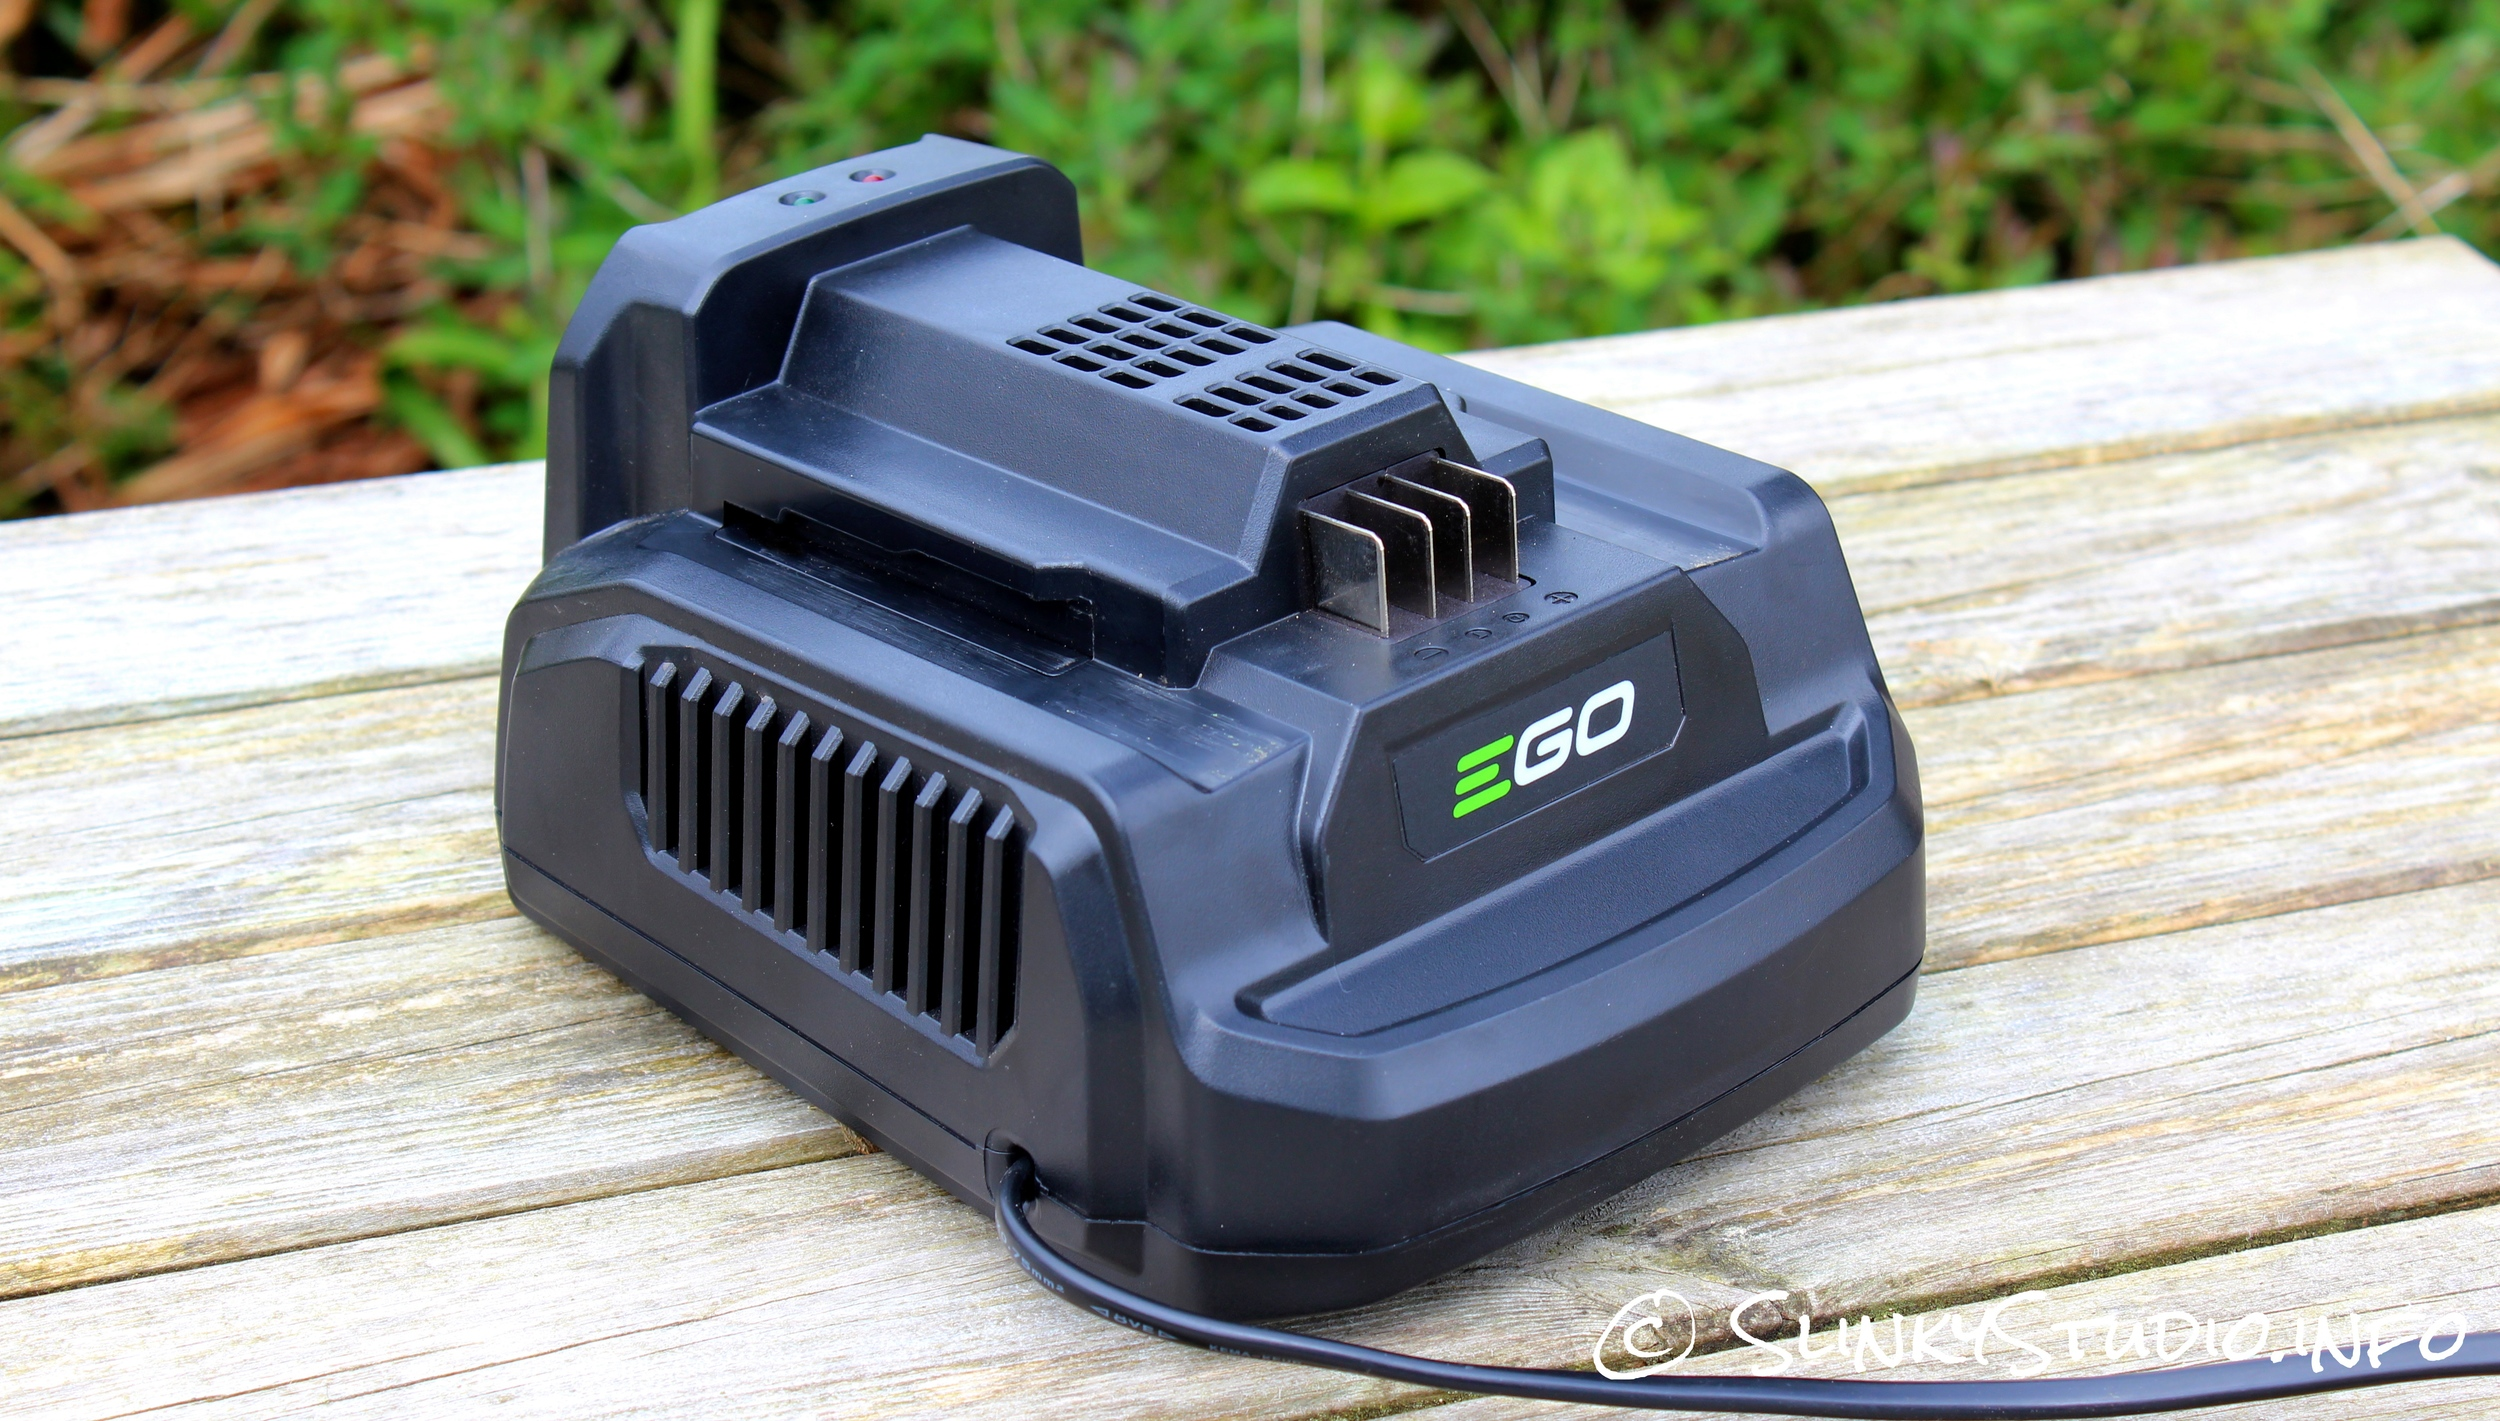 EGO Power+ Cordless Chainsaw Battery Charger